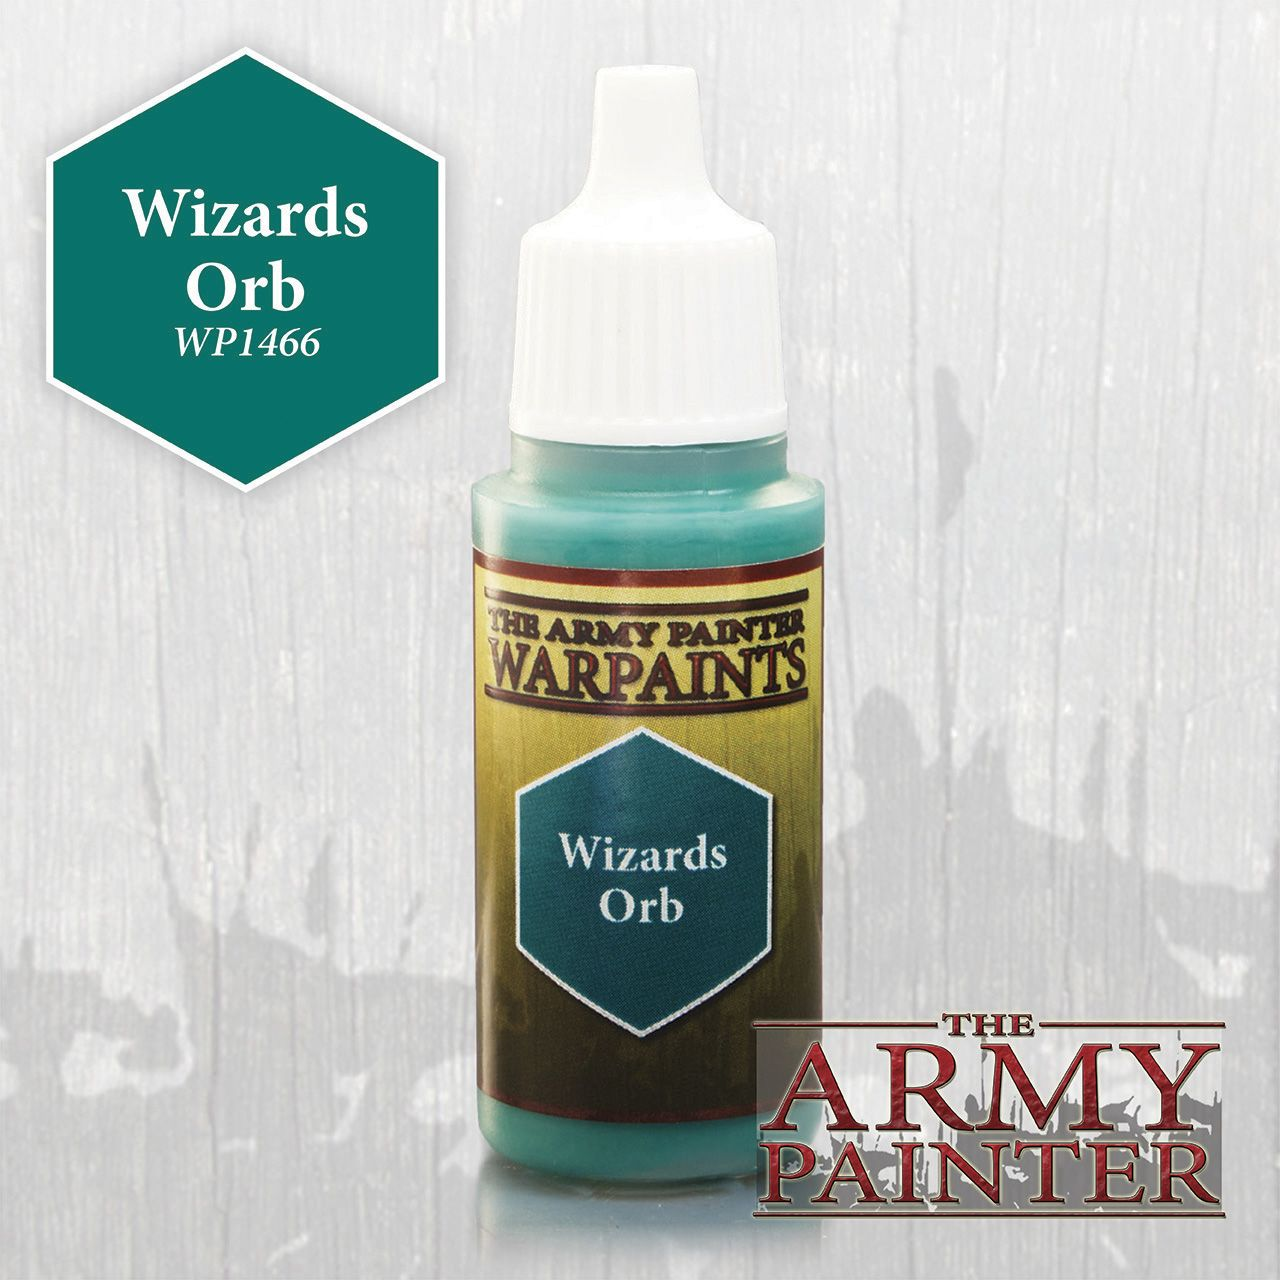 Wizards Orb, 18ml